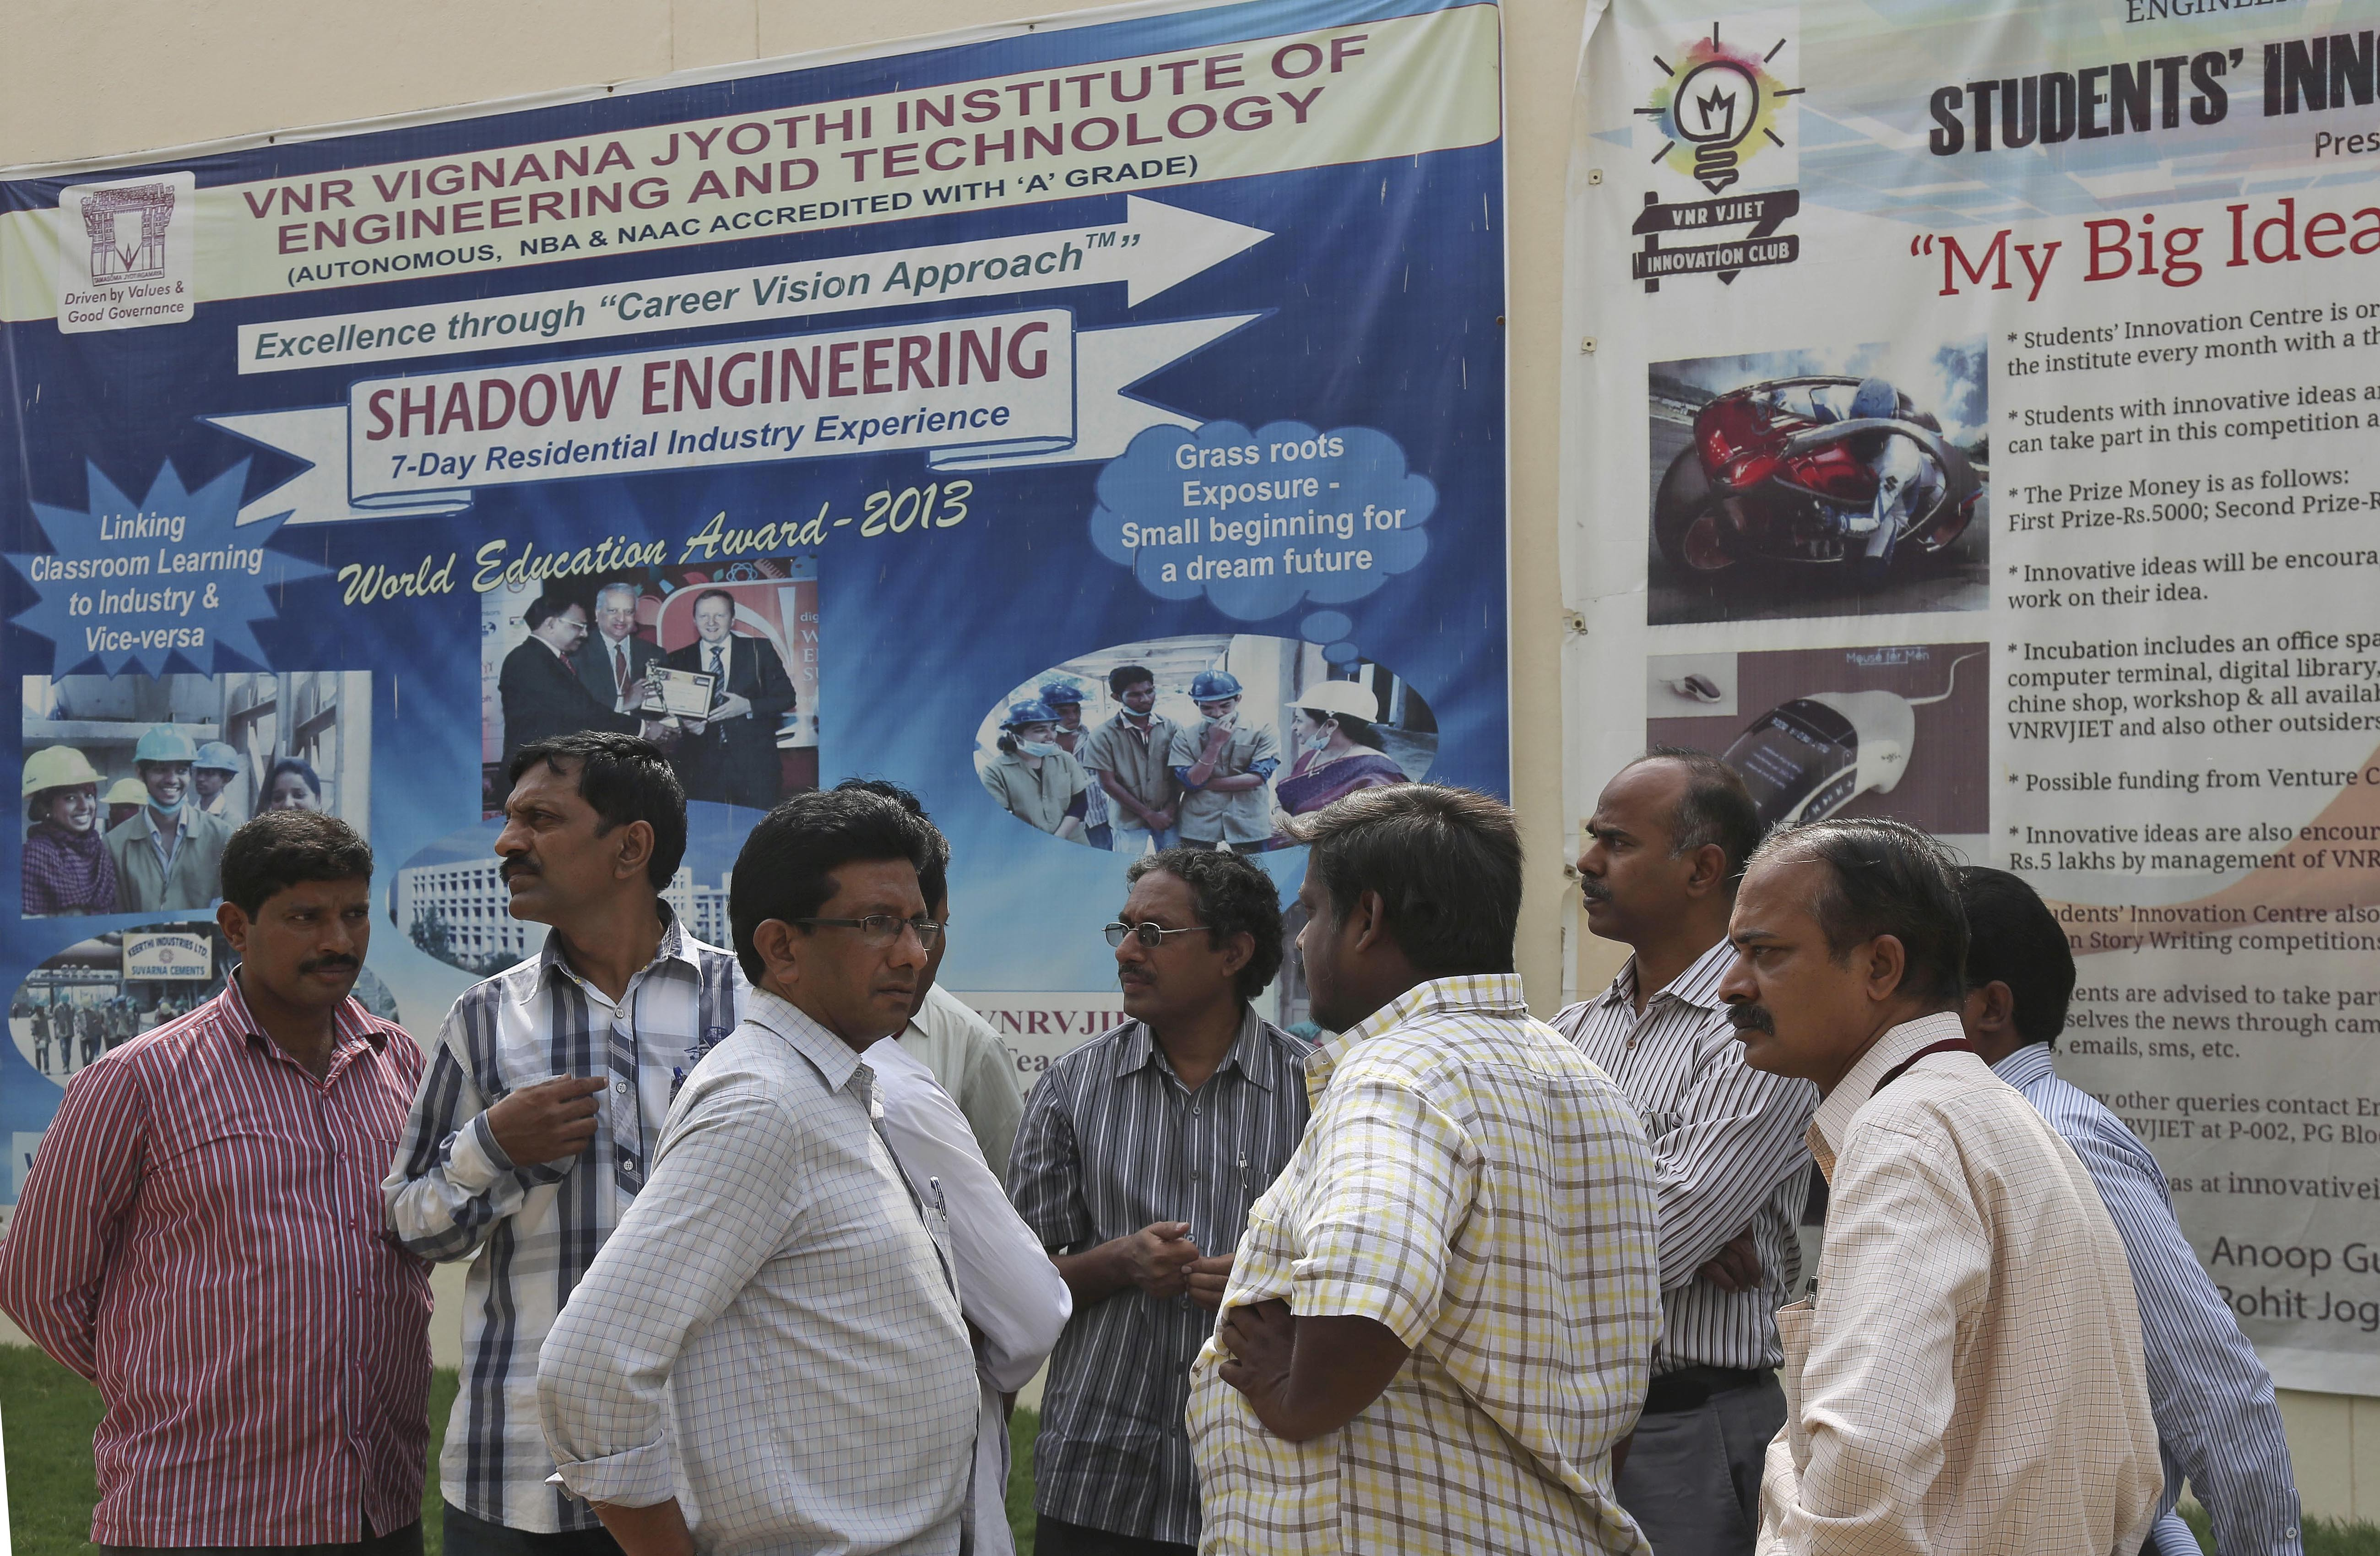 College staff working at VNR Vignana Jyothi Institute of Engineering and Technology gather on campus on the outskirts of Hyderabad, India, on June 9, 2014